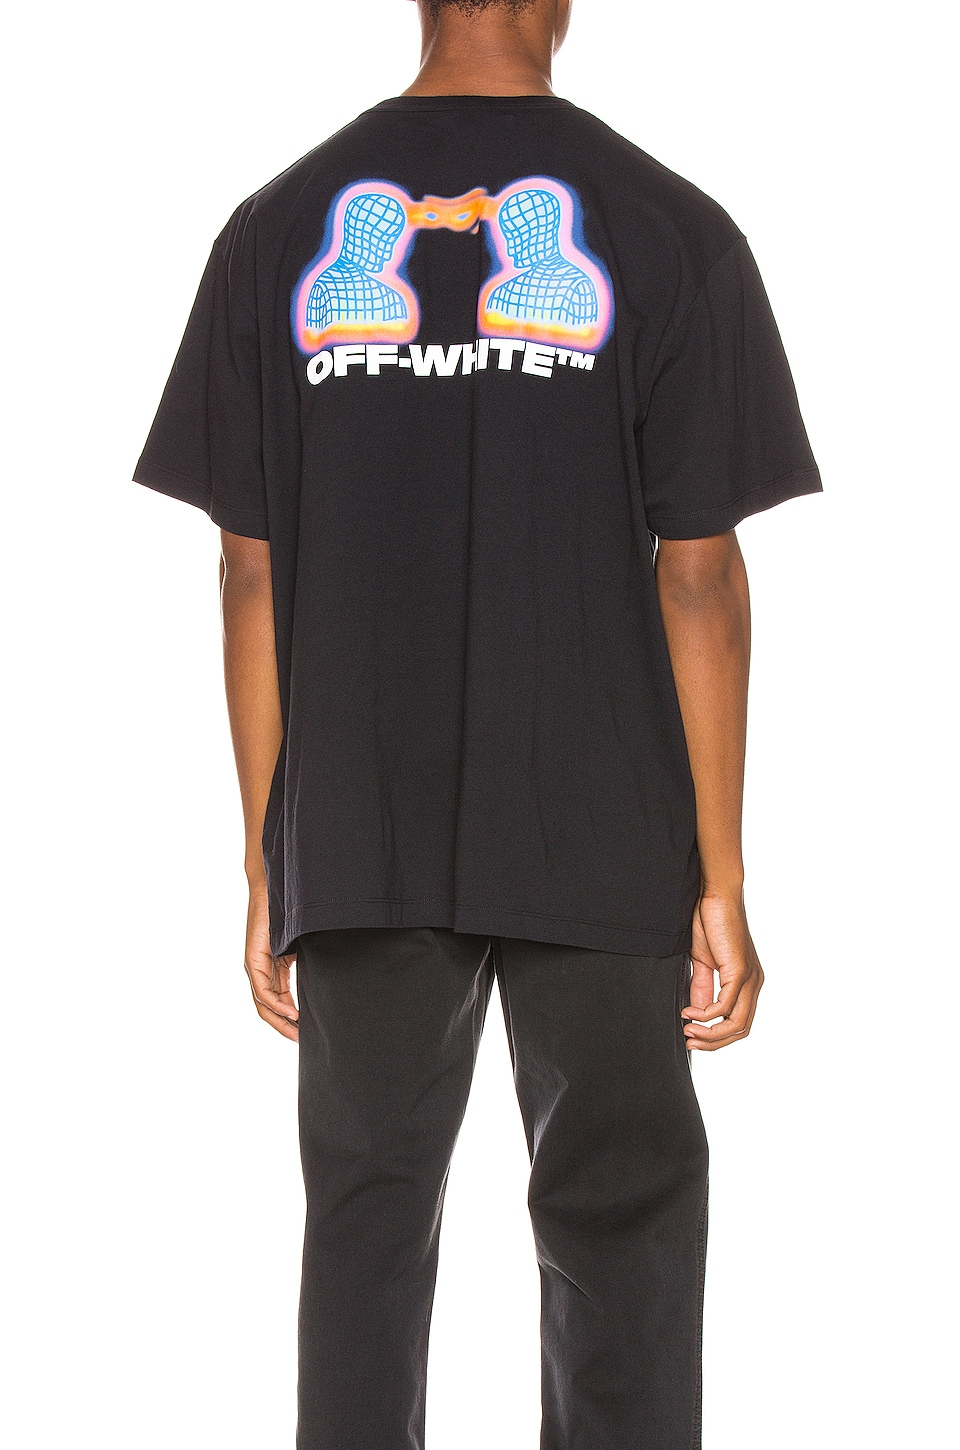 OFF-WHITE Thermo Oversized Tee in Black Multi